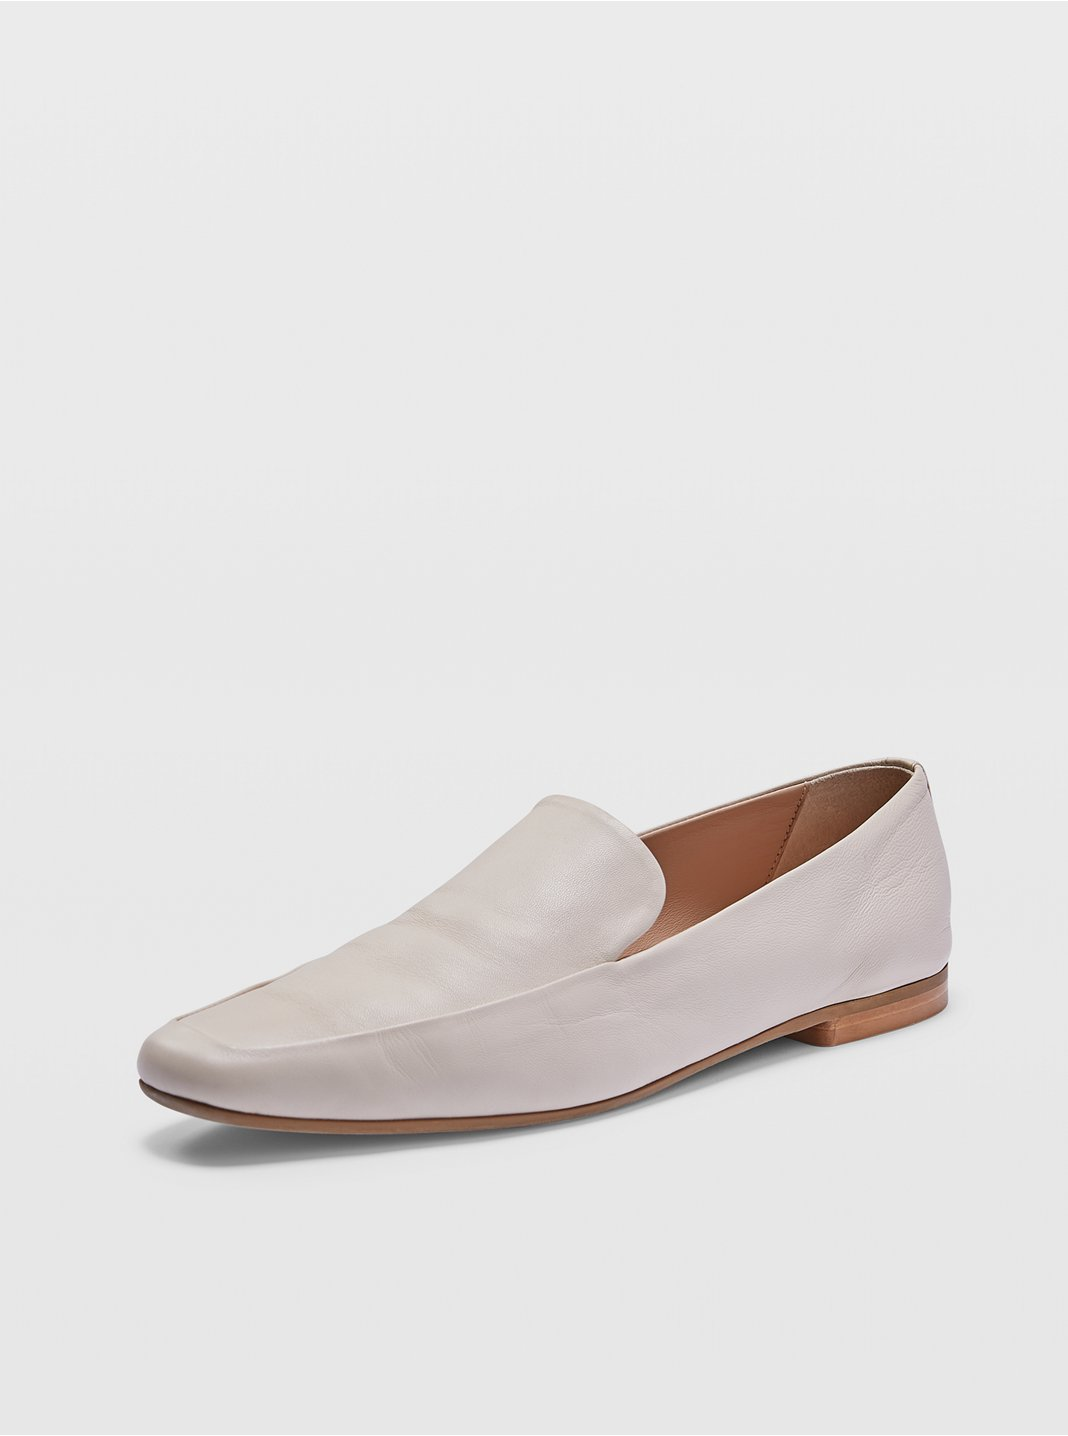 Sofii Leather Loafer Flats